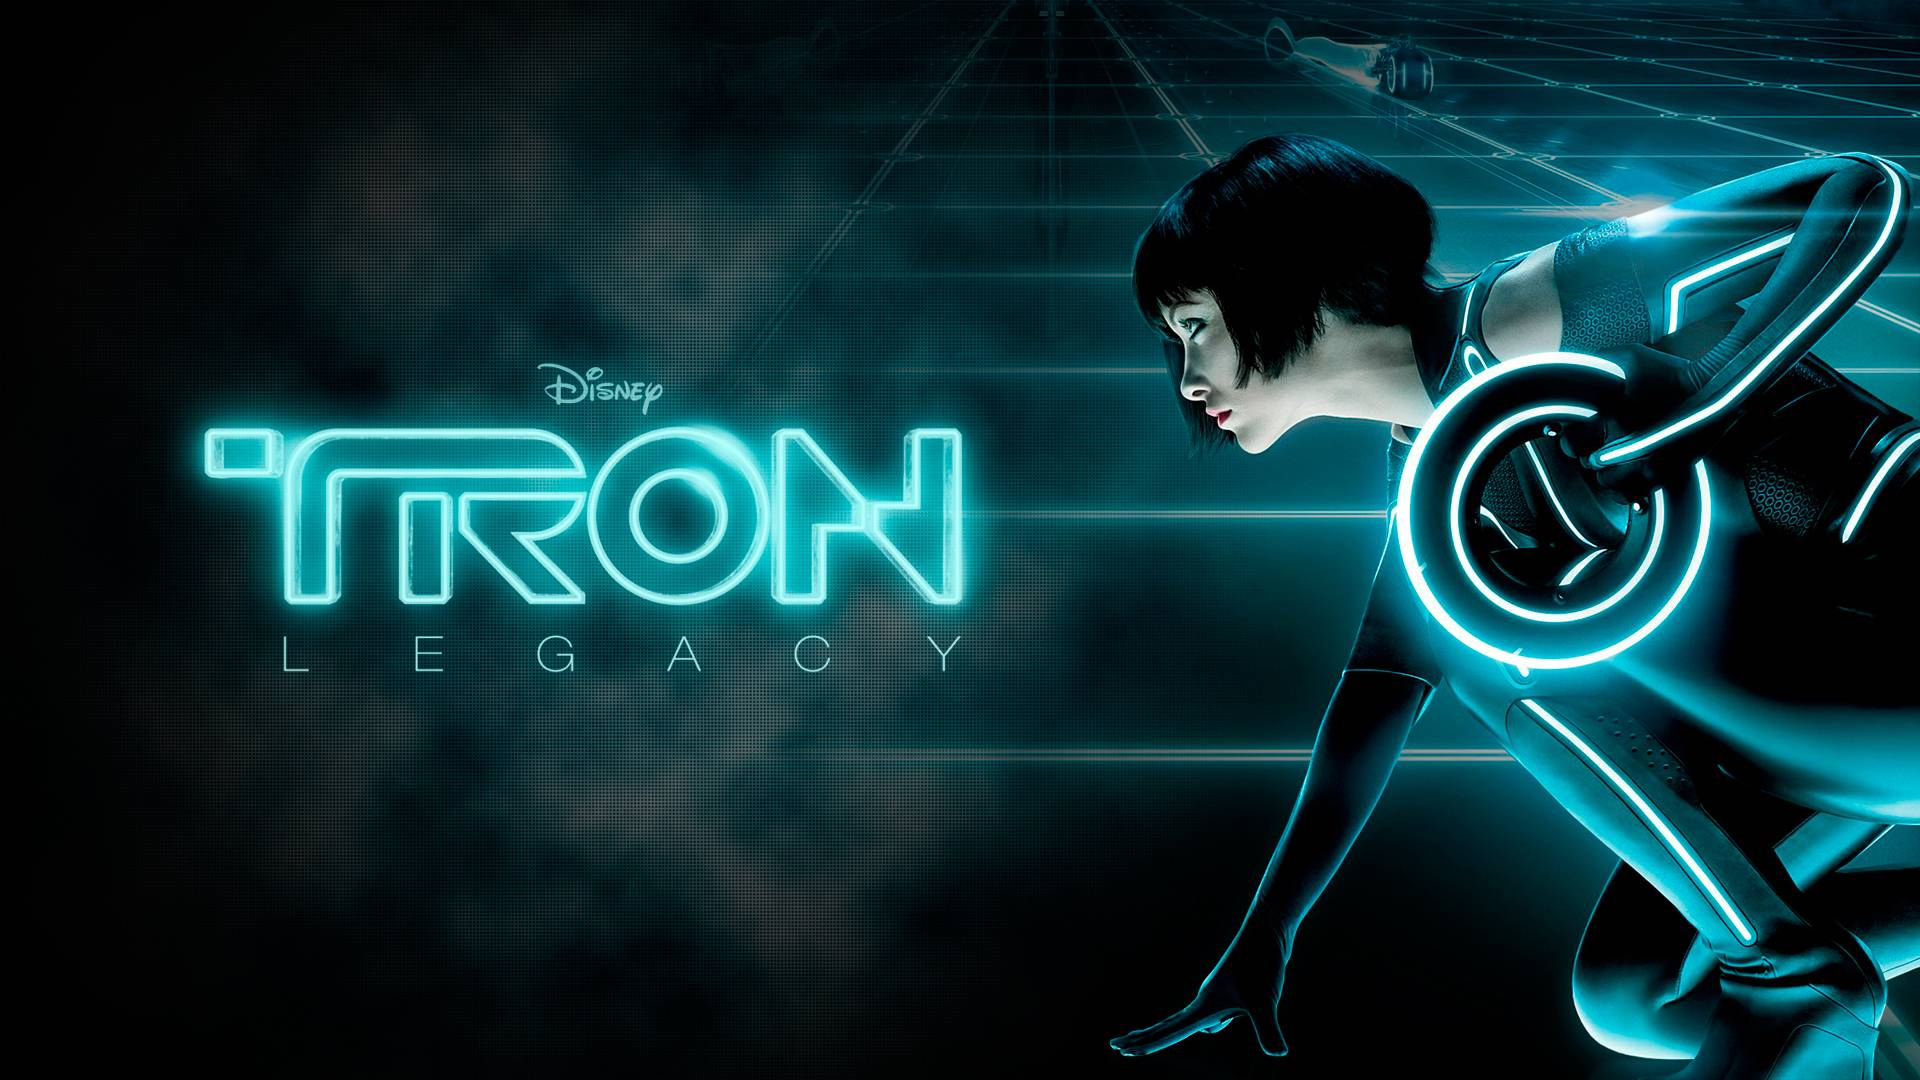 awesome tronlegacy wallpapers - photo #32